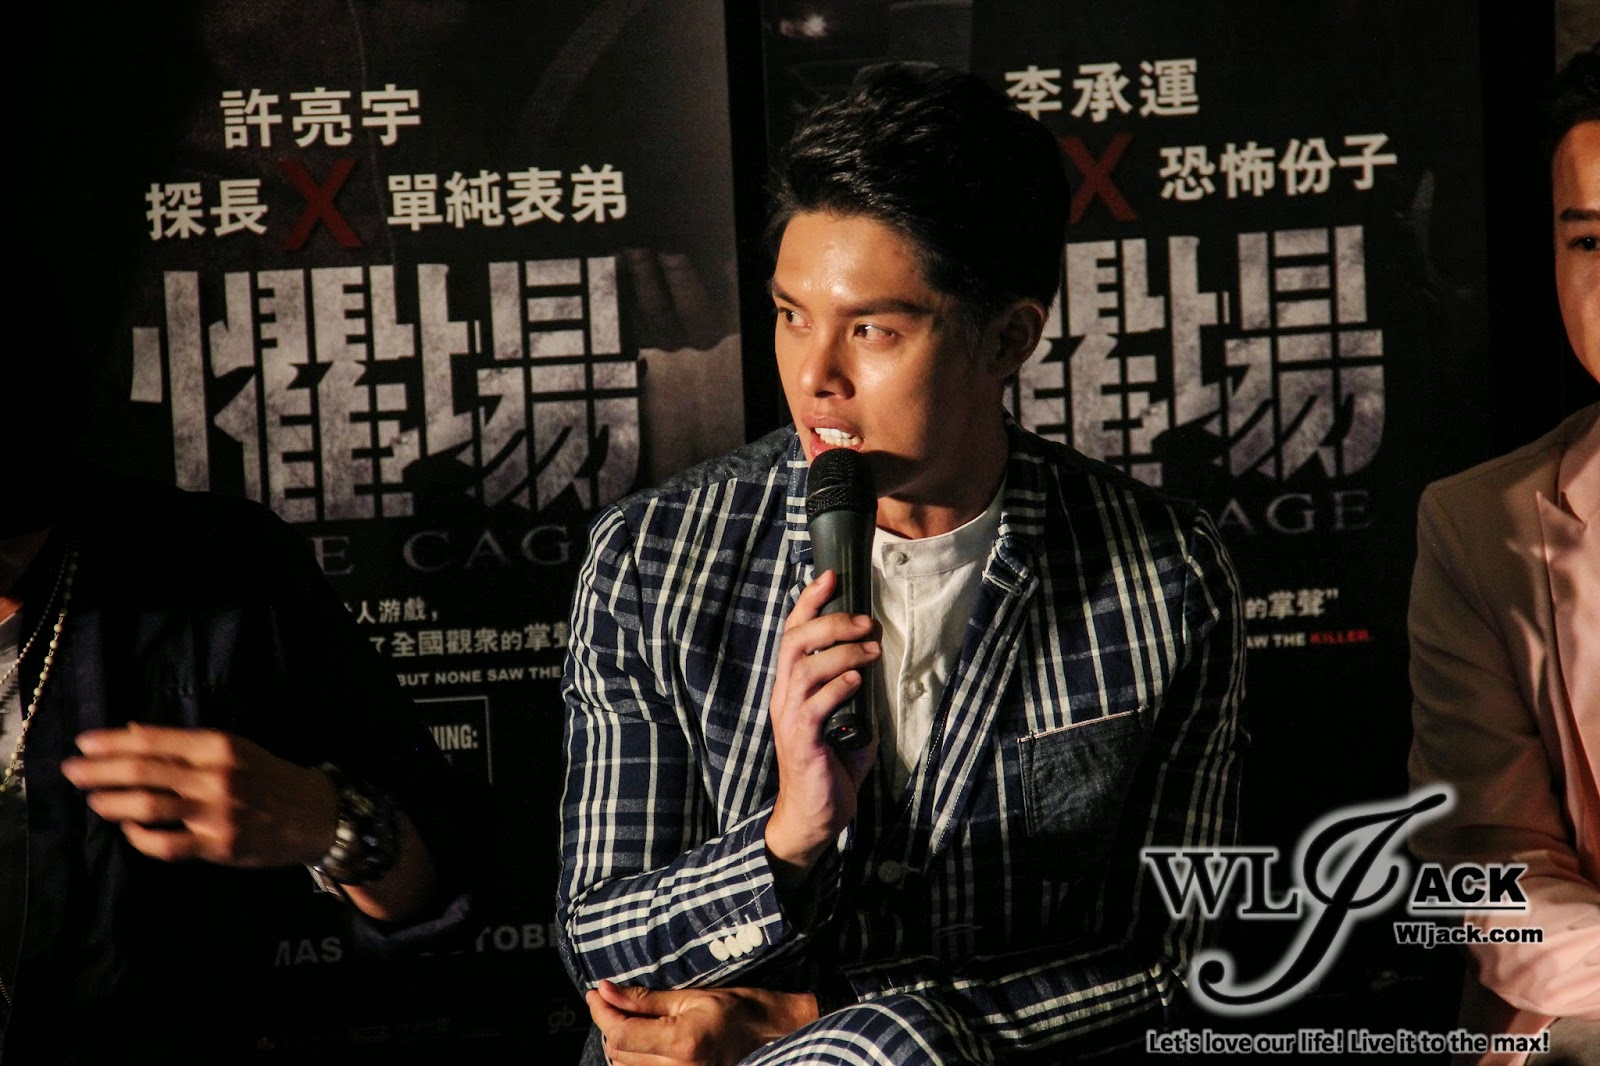 The Cage Screening Press Conference (wljack.com)